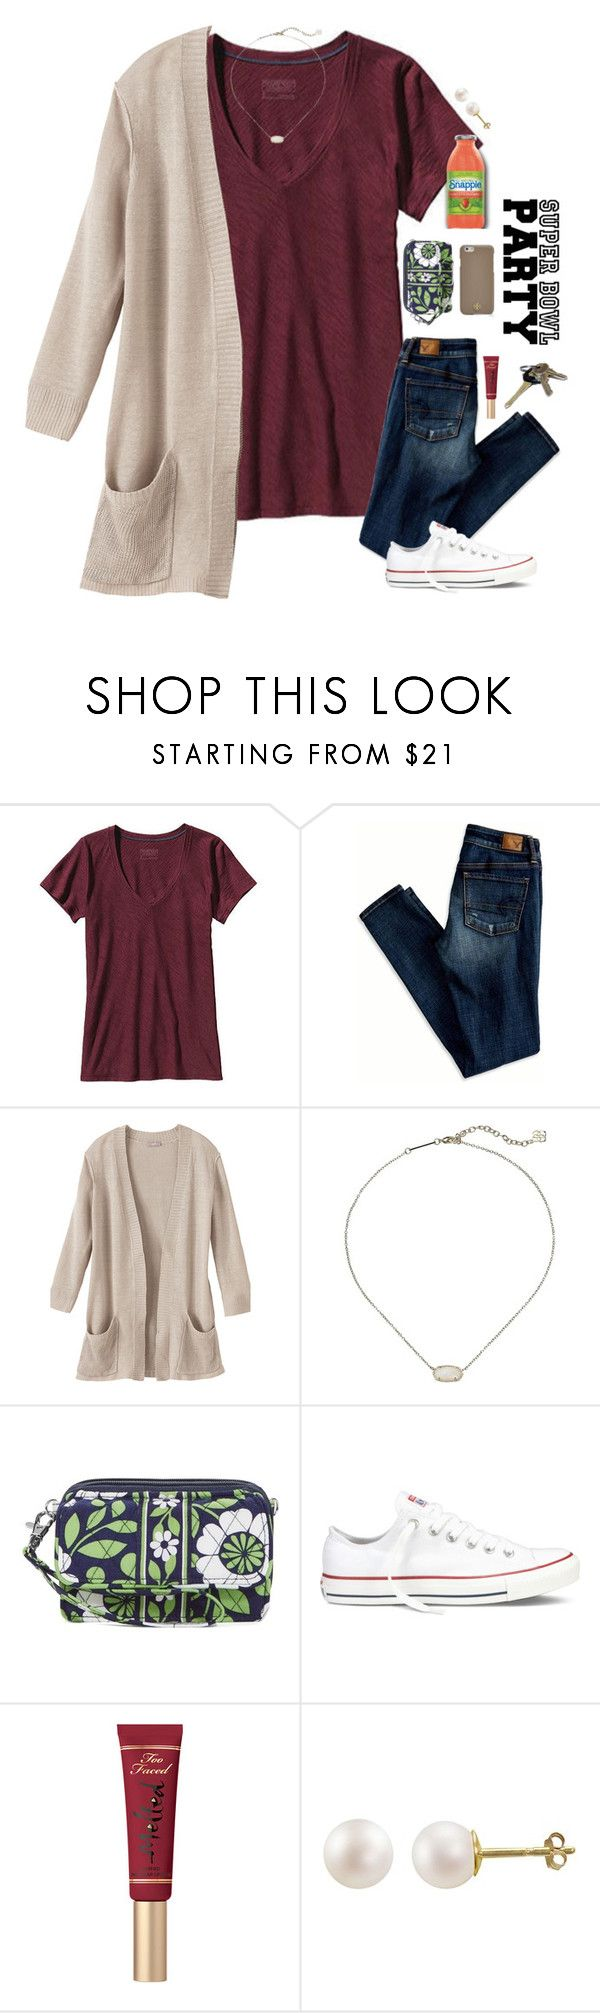 """my exact ootd for a Super Bowl party!!❤️"" by sdyerrtx ❤ liked on Polyvore featuring Patagonia, American Eagle Outfitters, Kendra Scott, Vera Bradley, Converse, PearLustre by Imperial, Tory Burch, Avon, women's clothing and women"